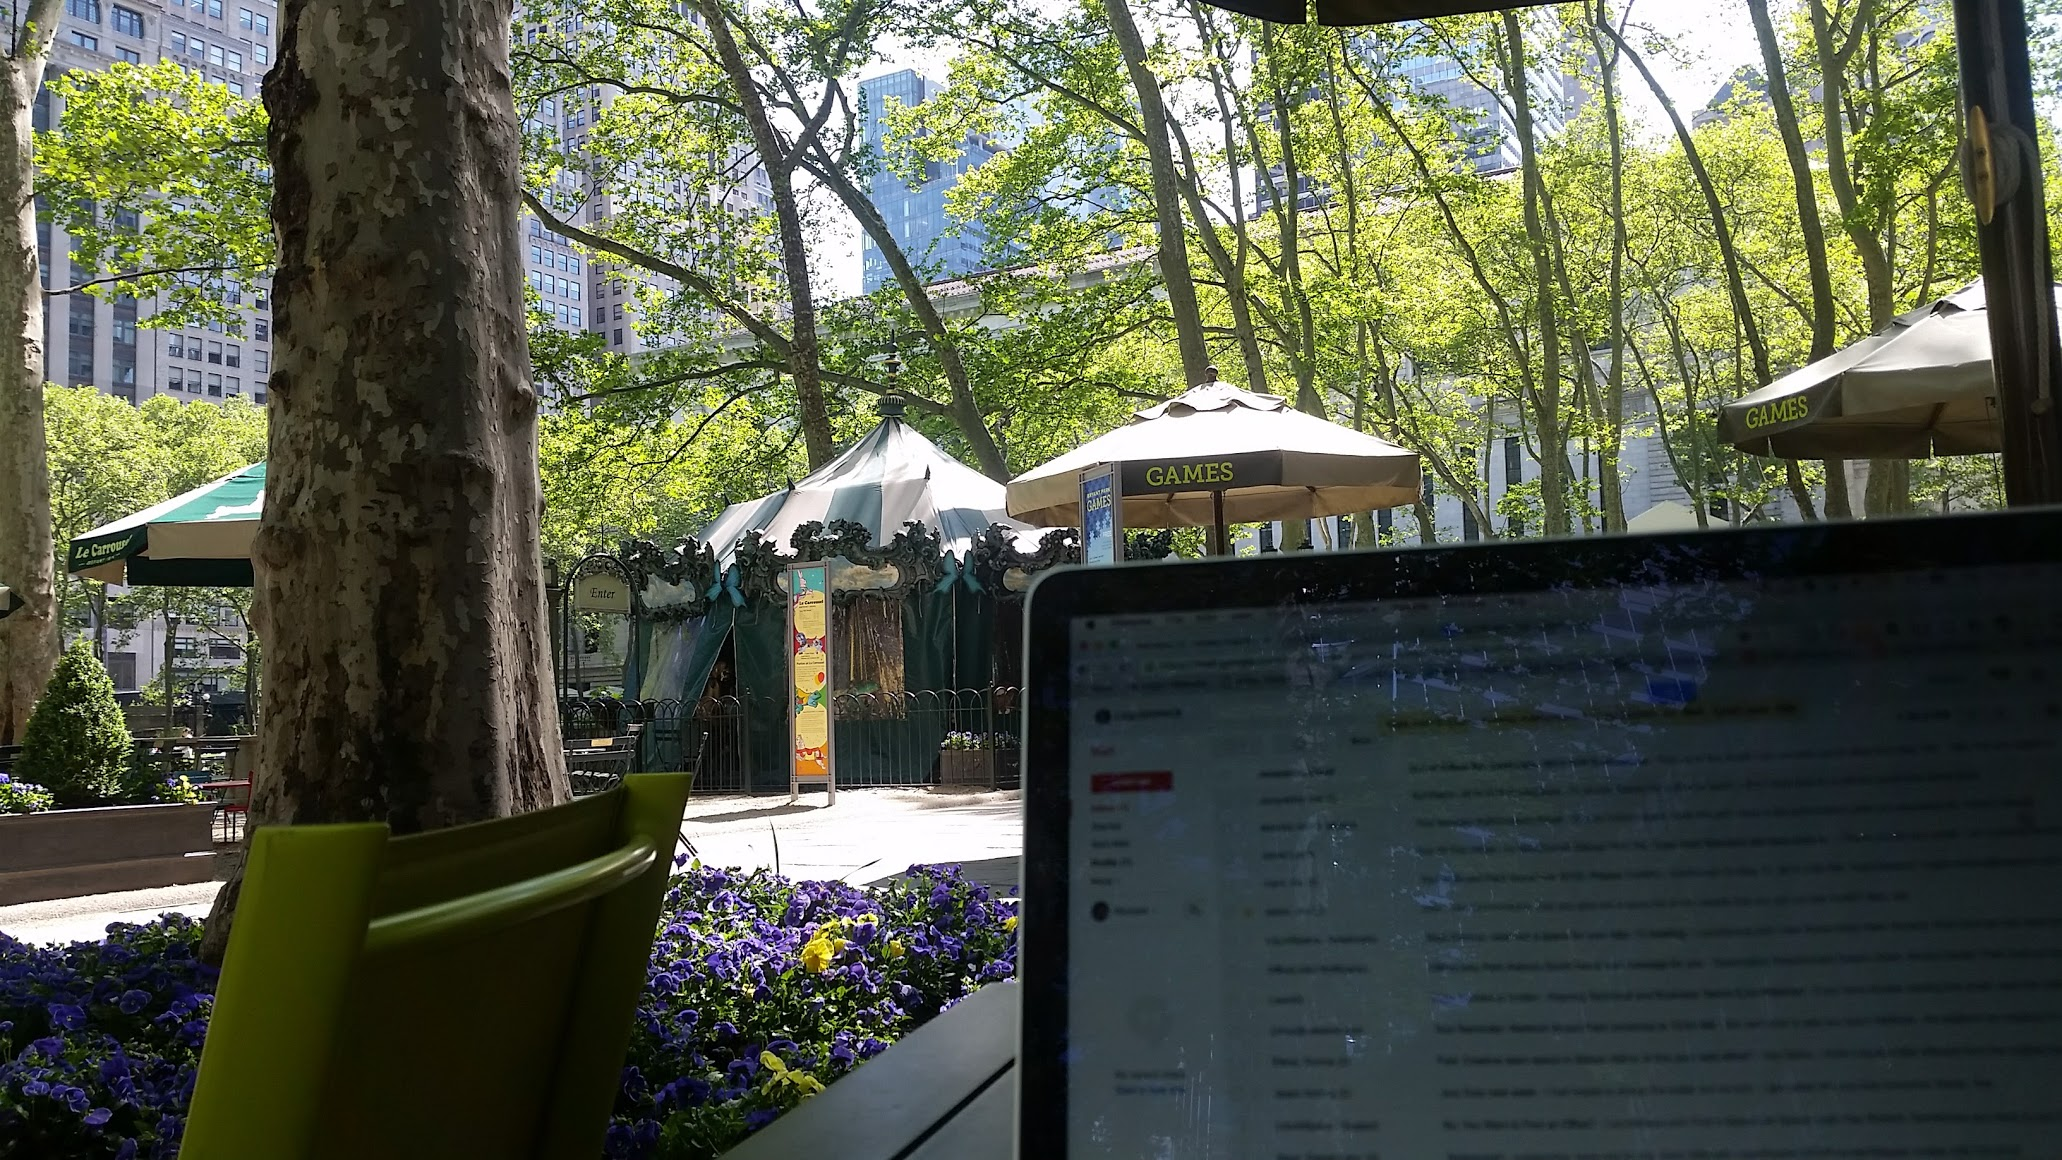 Workspace Freedom means working outside